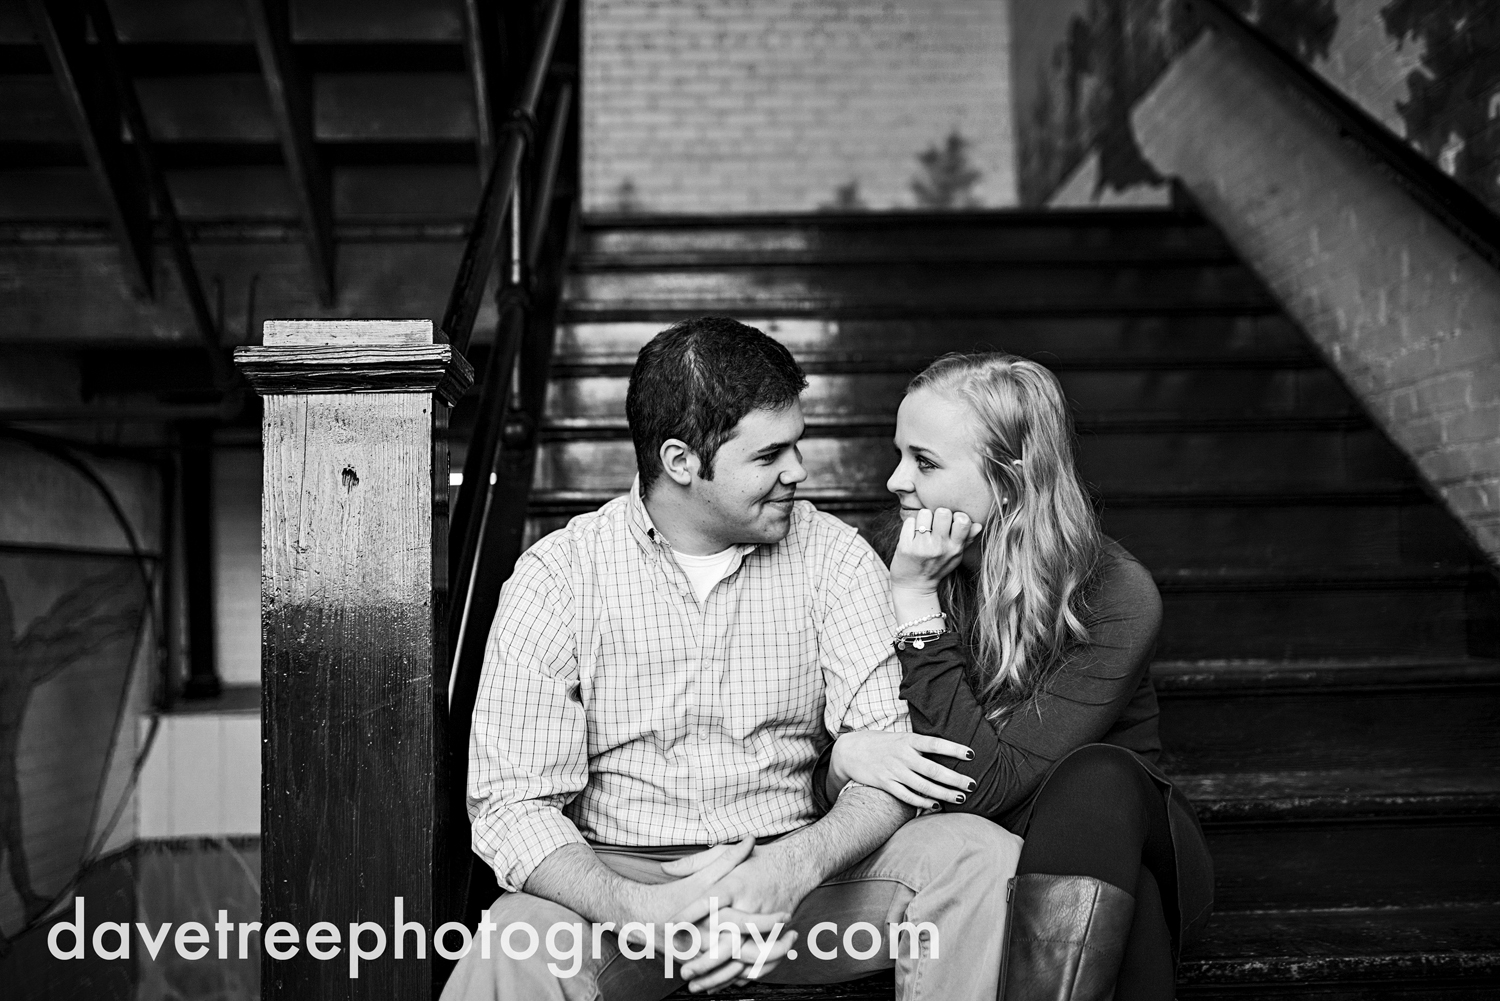 kalamazoo_engagement_photographer_314.jpg